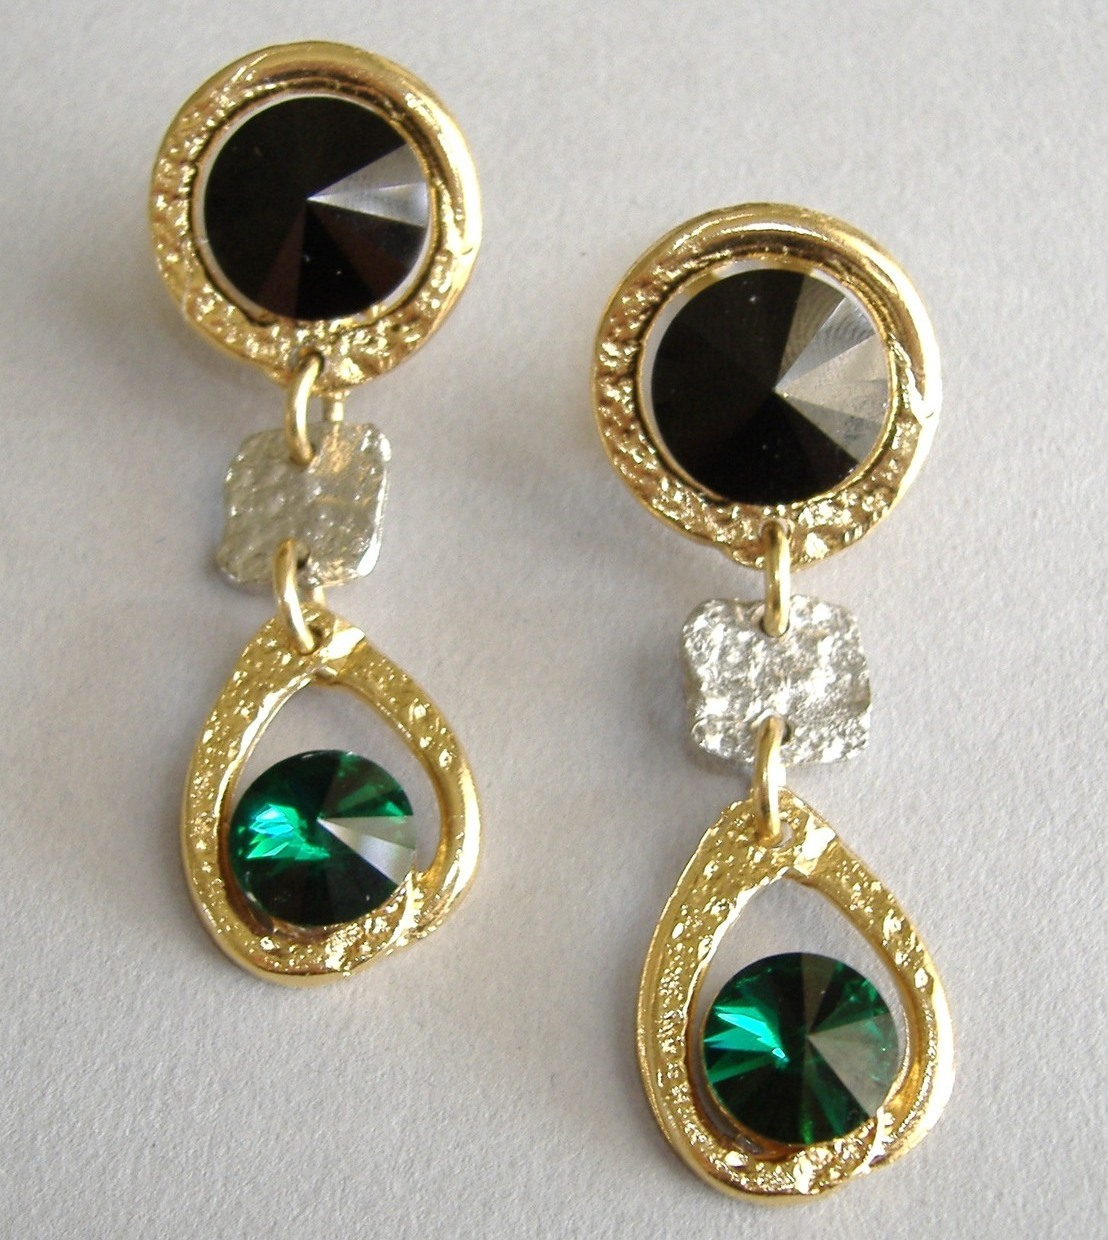 Emerald Green Black Crystal Earrings Gold Silver Unique Clip-on Dangle  Handmade